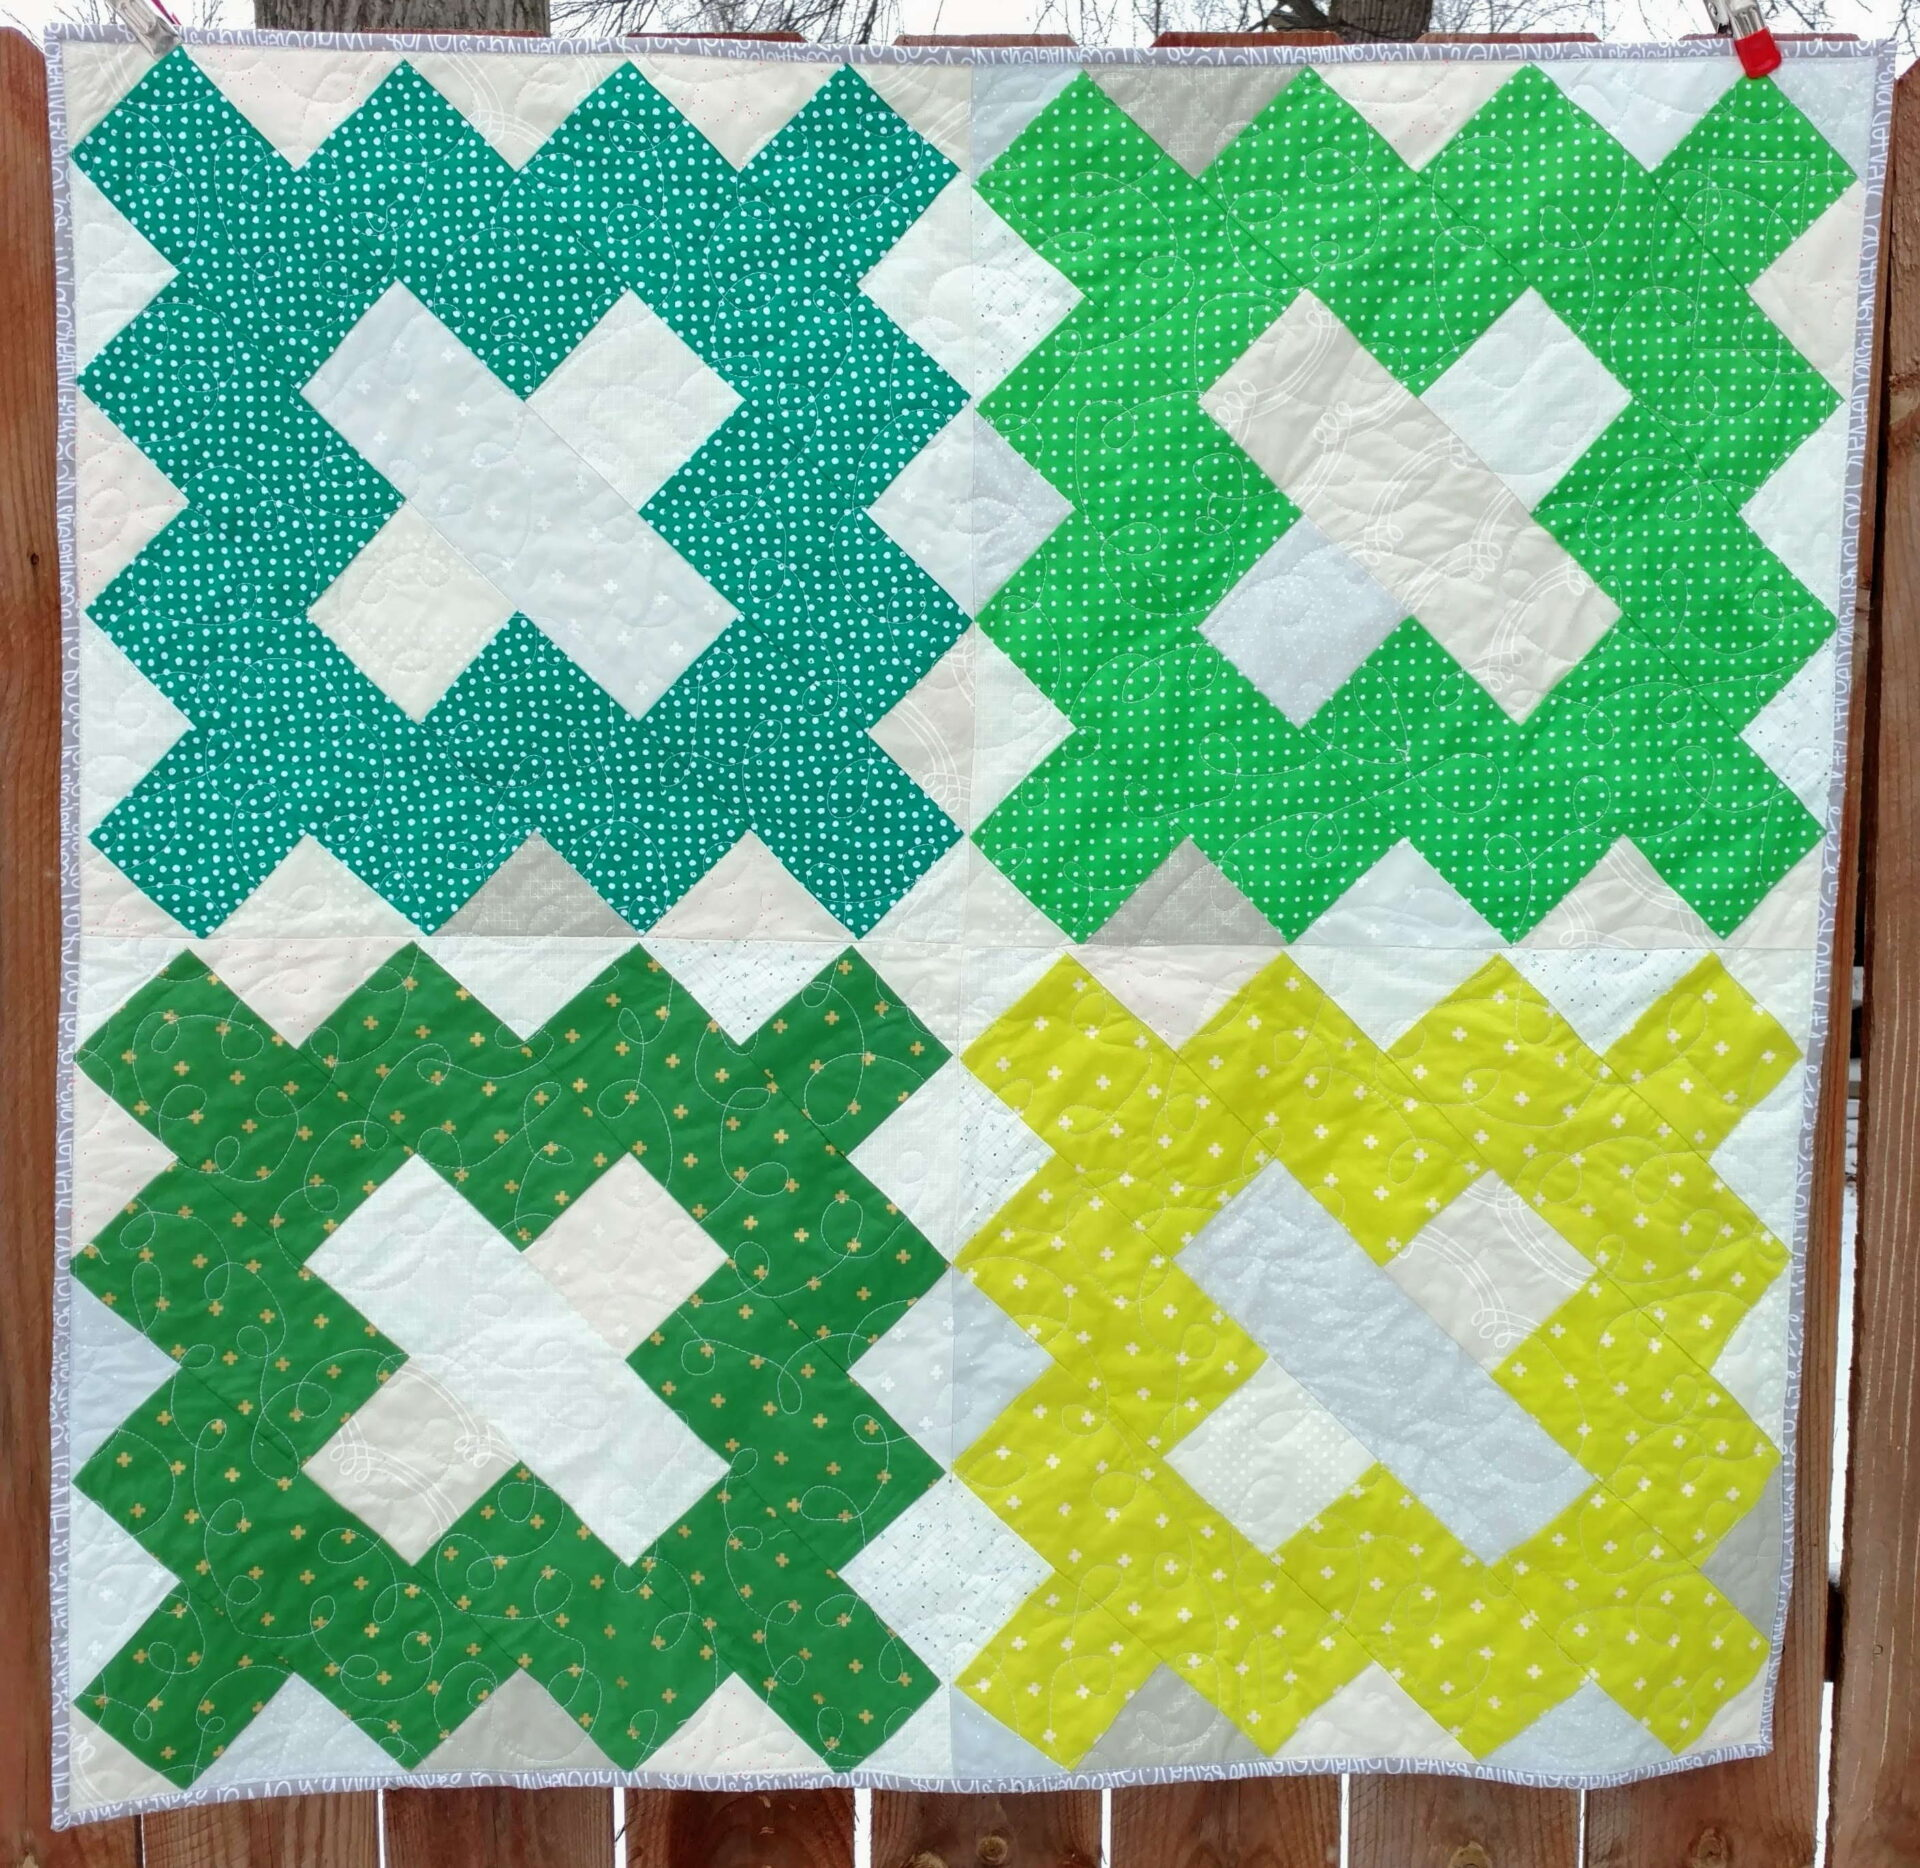 Handmade Baby Quilts are the Best Gifts